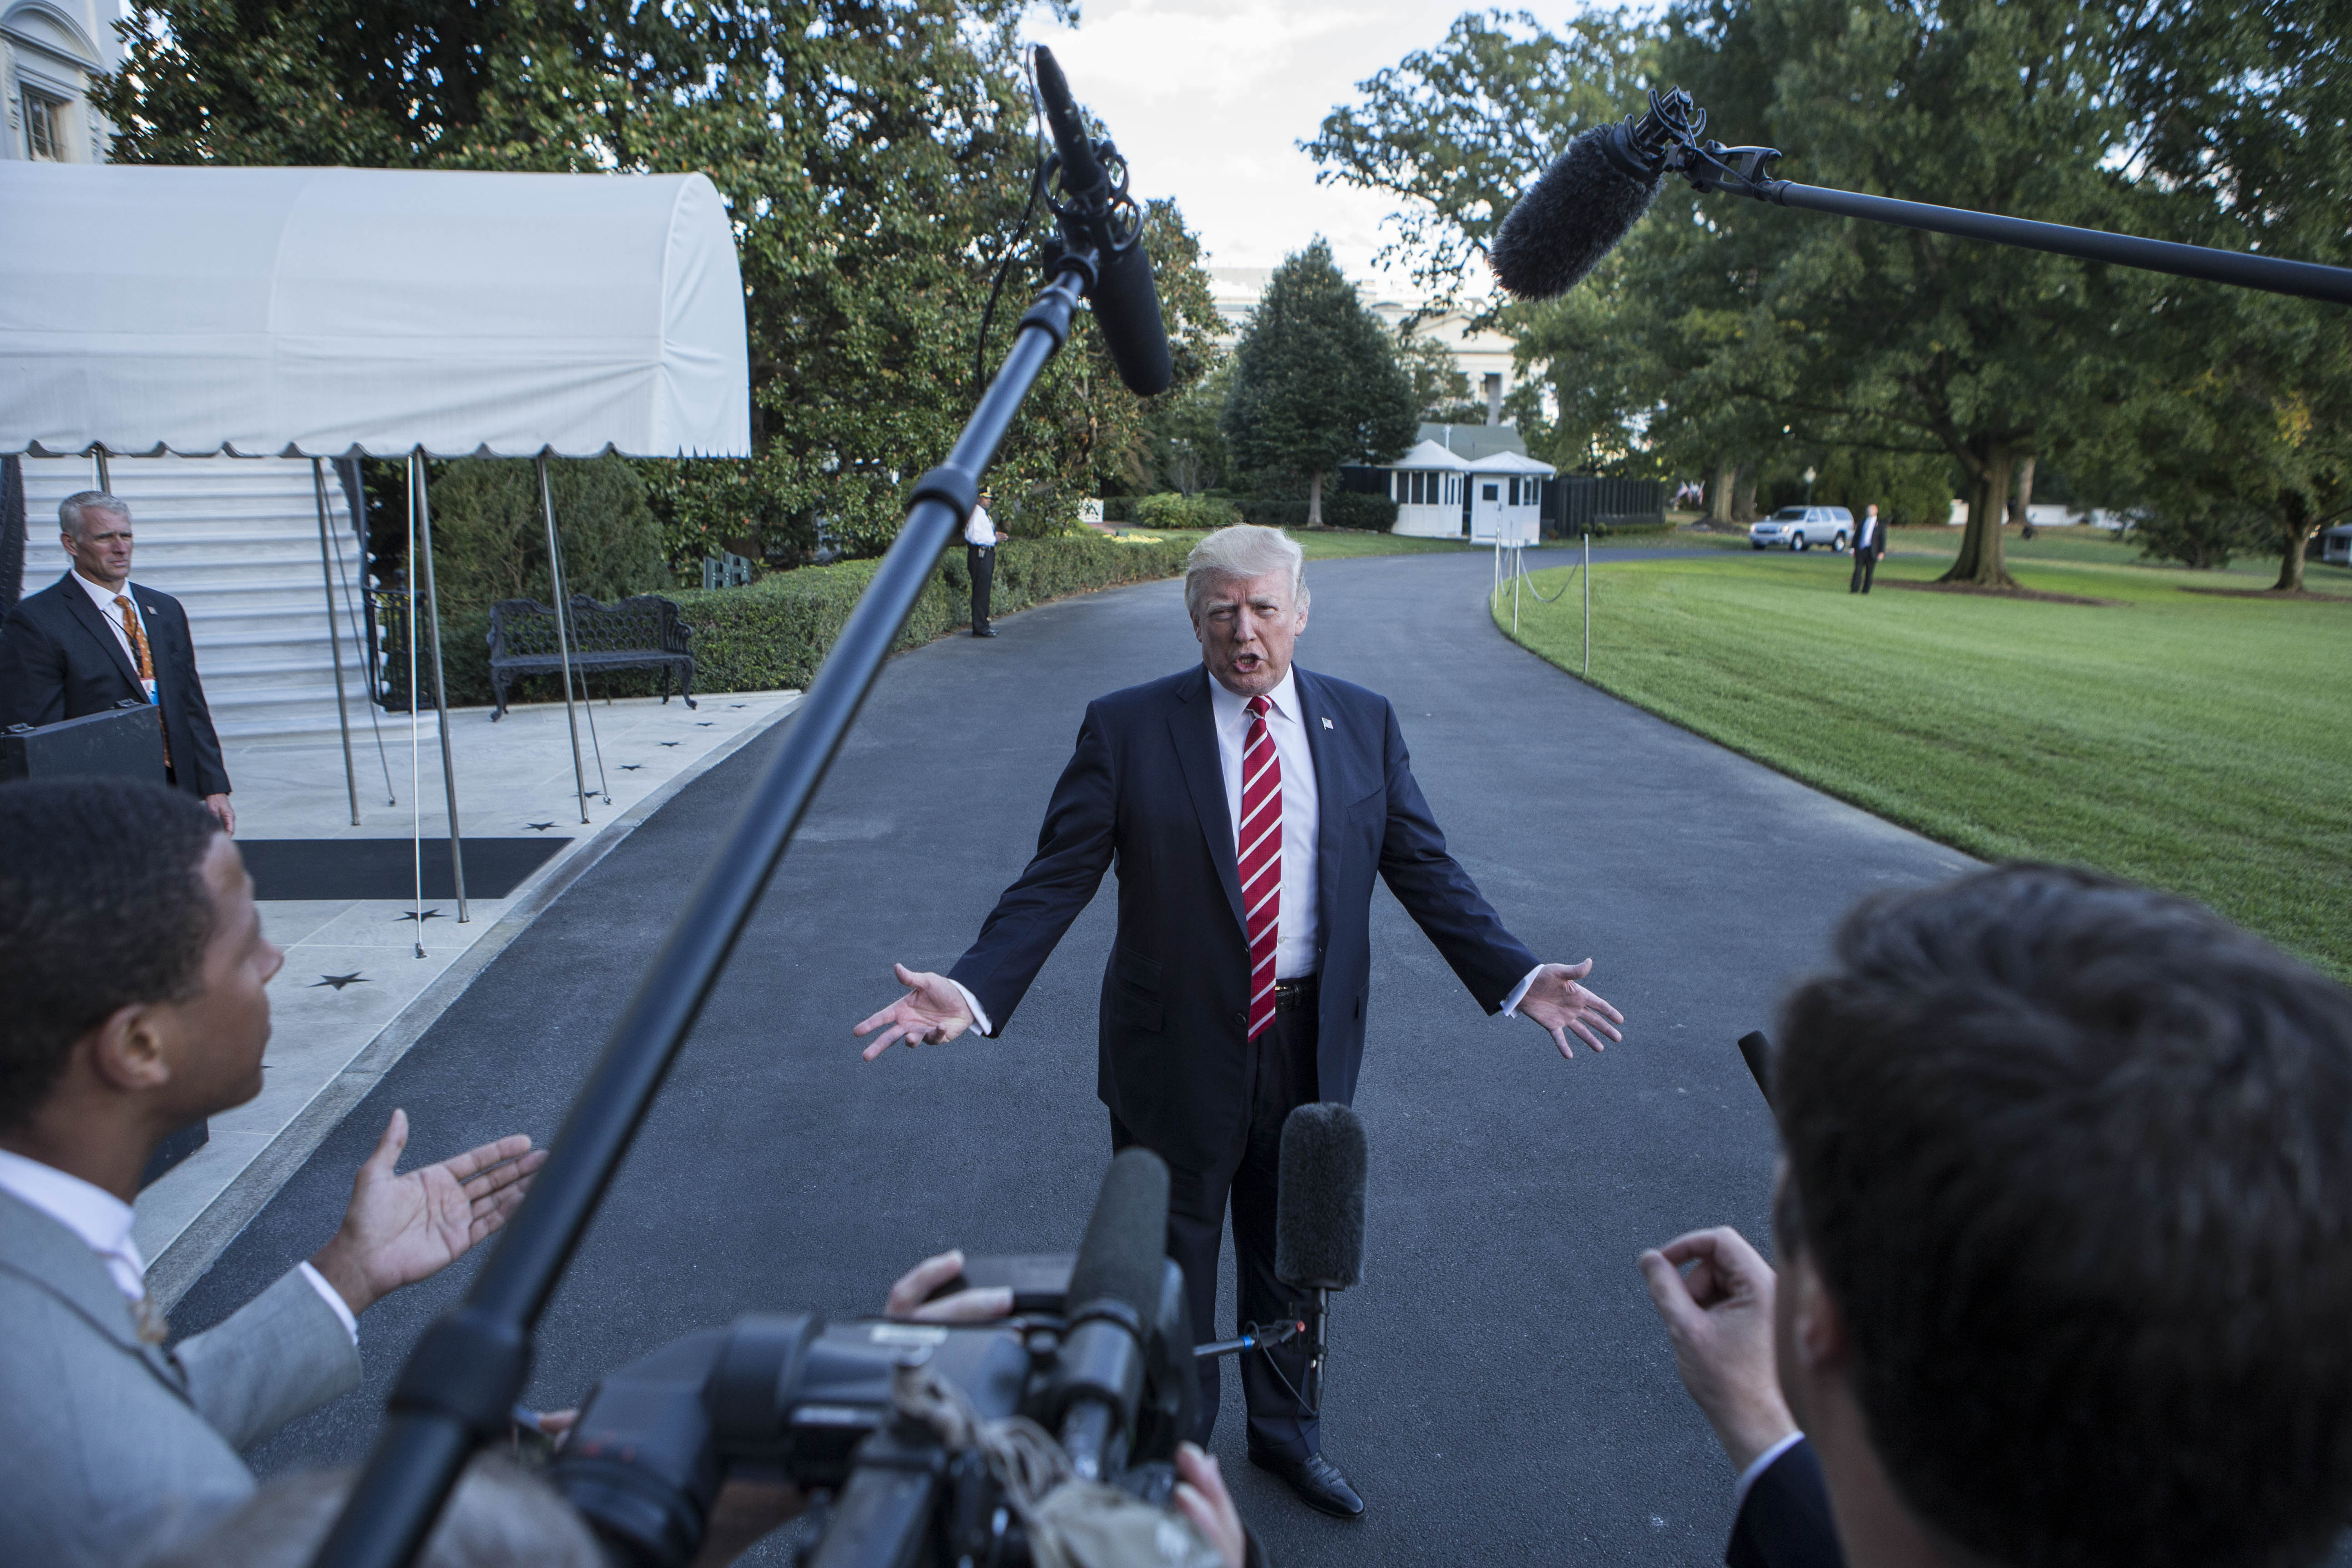 US President Donald Trump speaks with reporters outside the White House prior to his departure aboard Marine One on October 7, 2017. (ALEX EDELMAN/AFP/Getty Images)